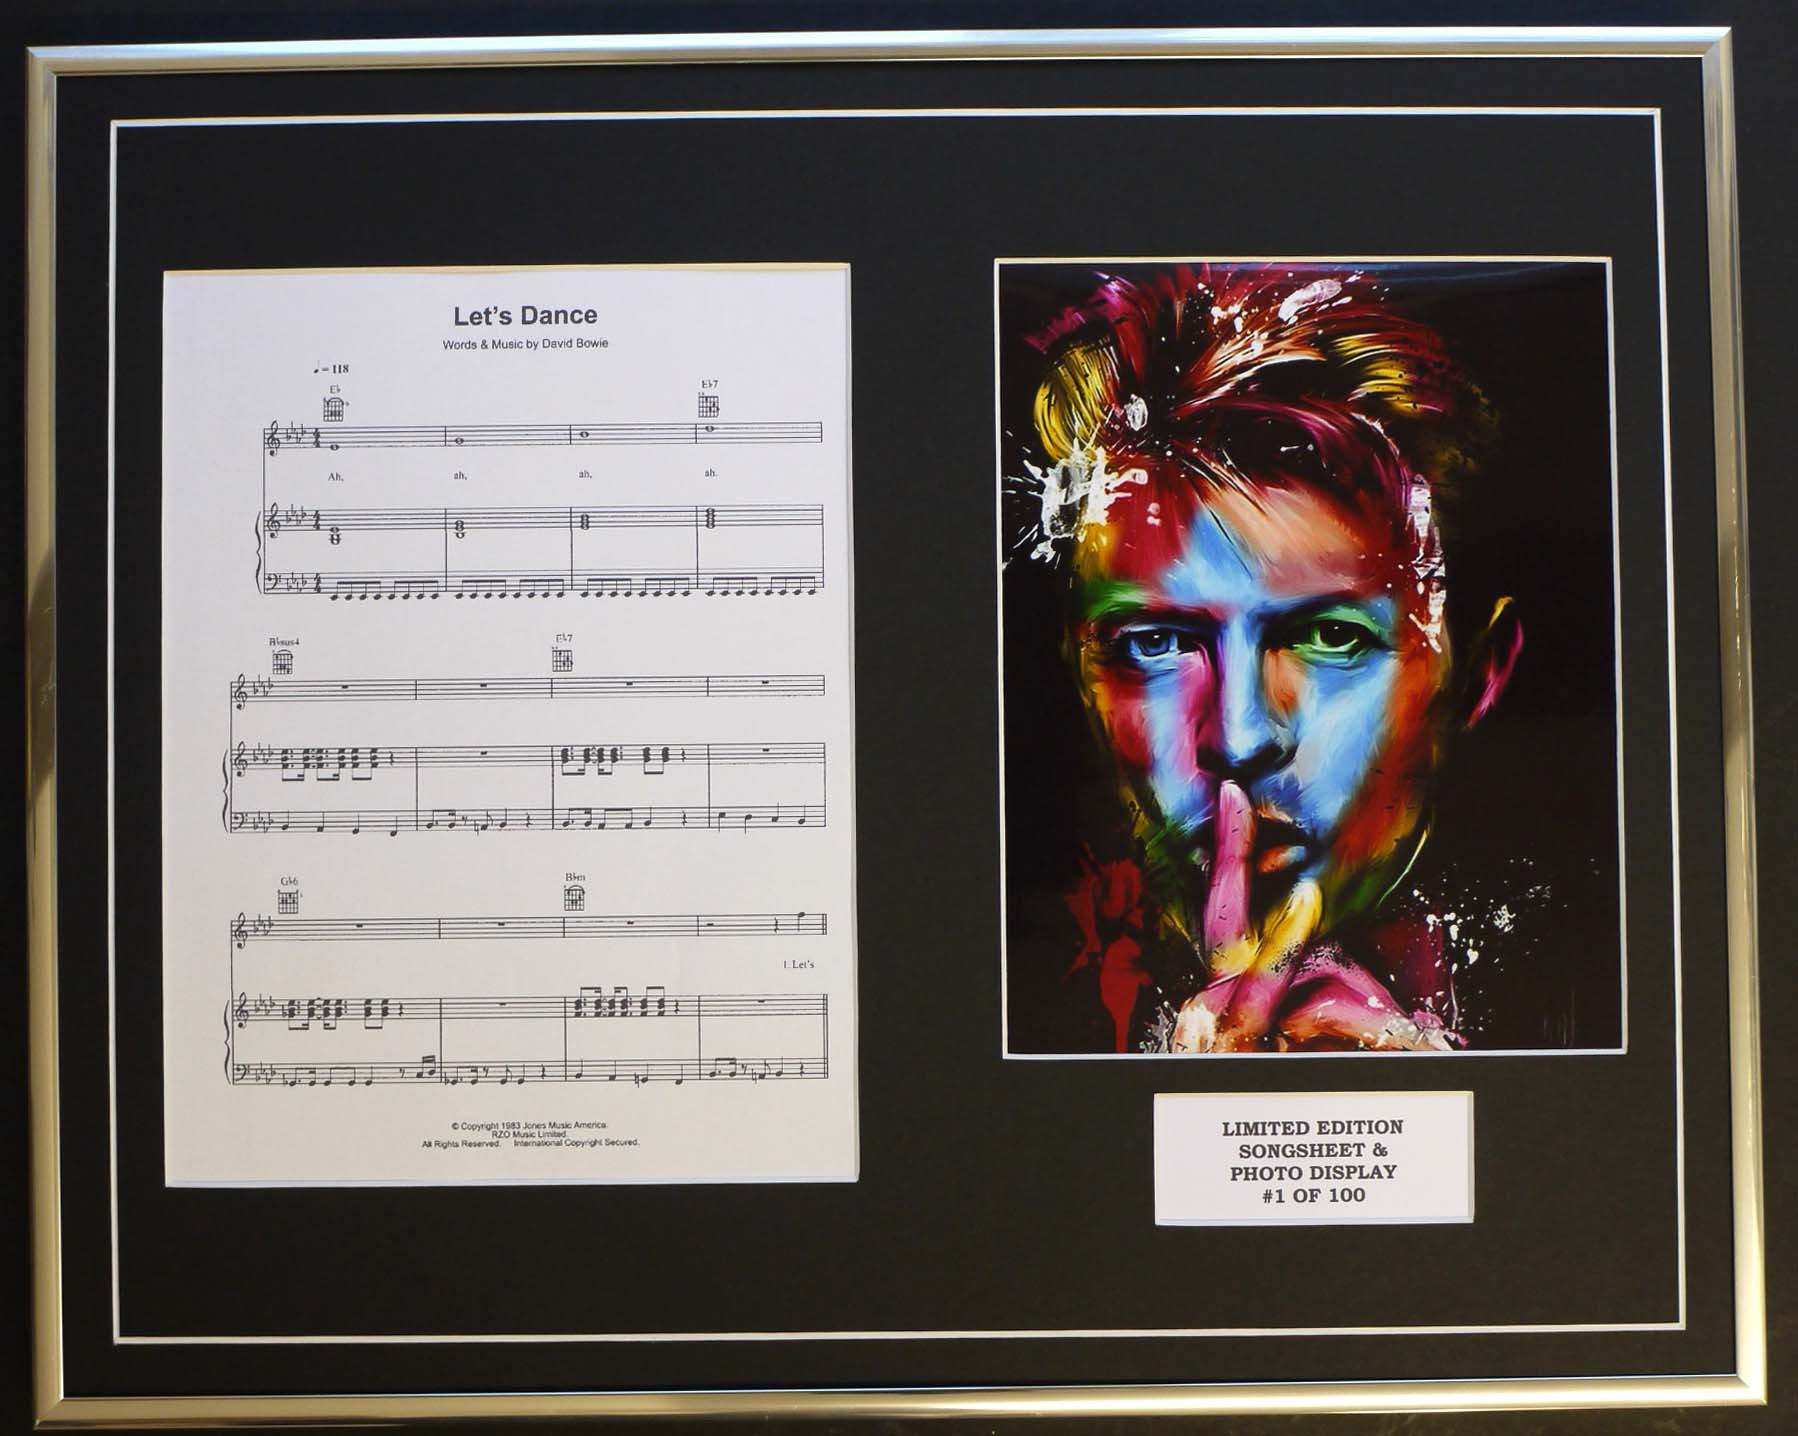 EC David Bowie/SONGSHEET & Photo Display/LTD. Edition/Let's Dance